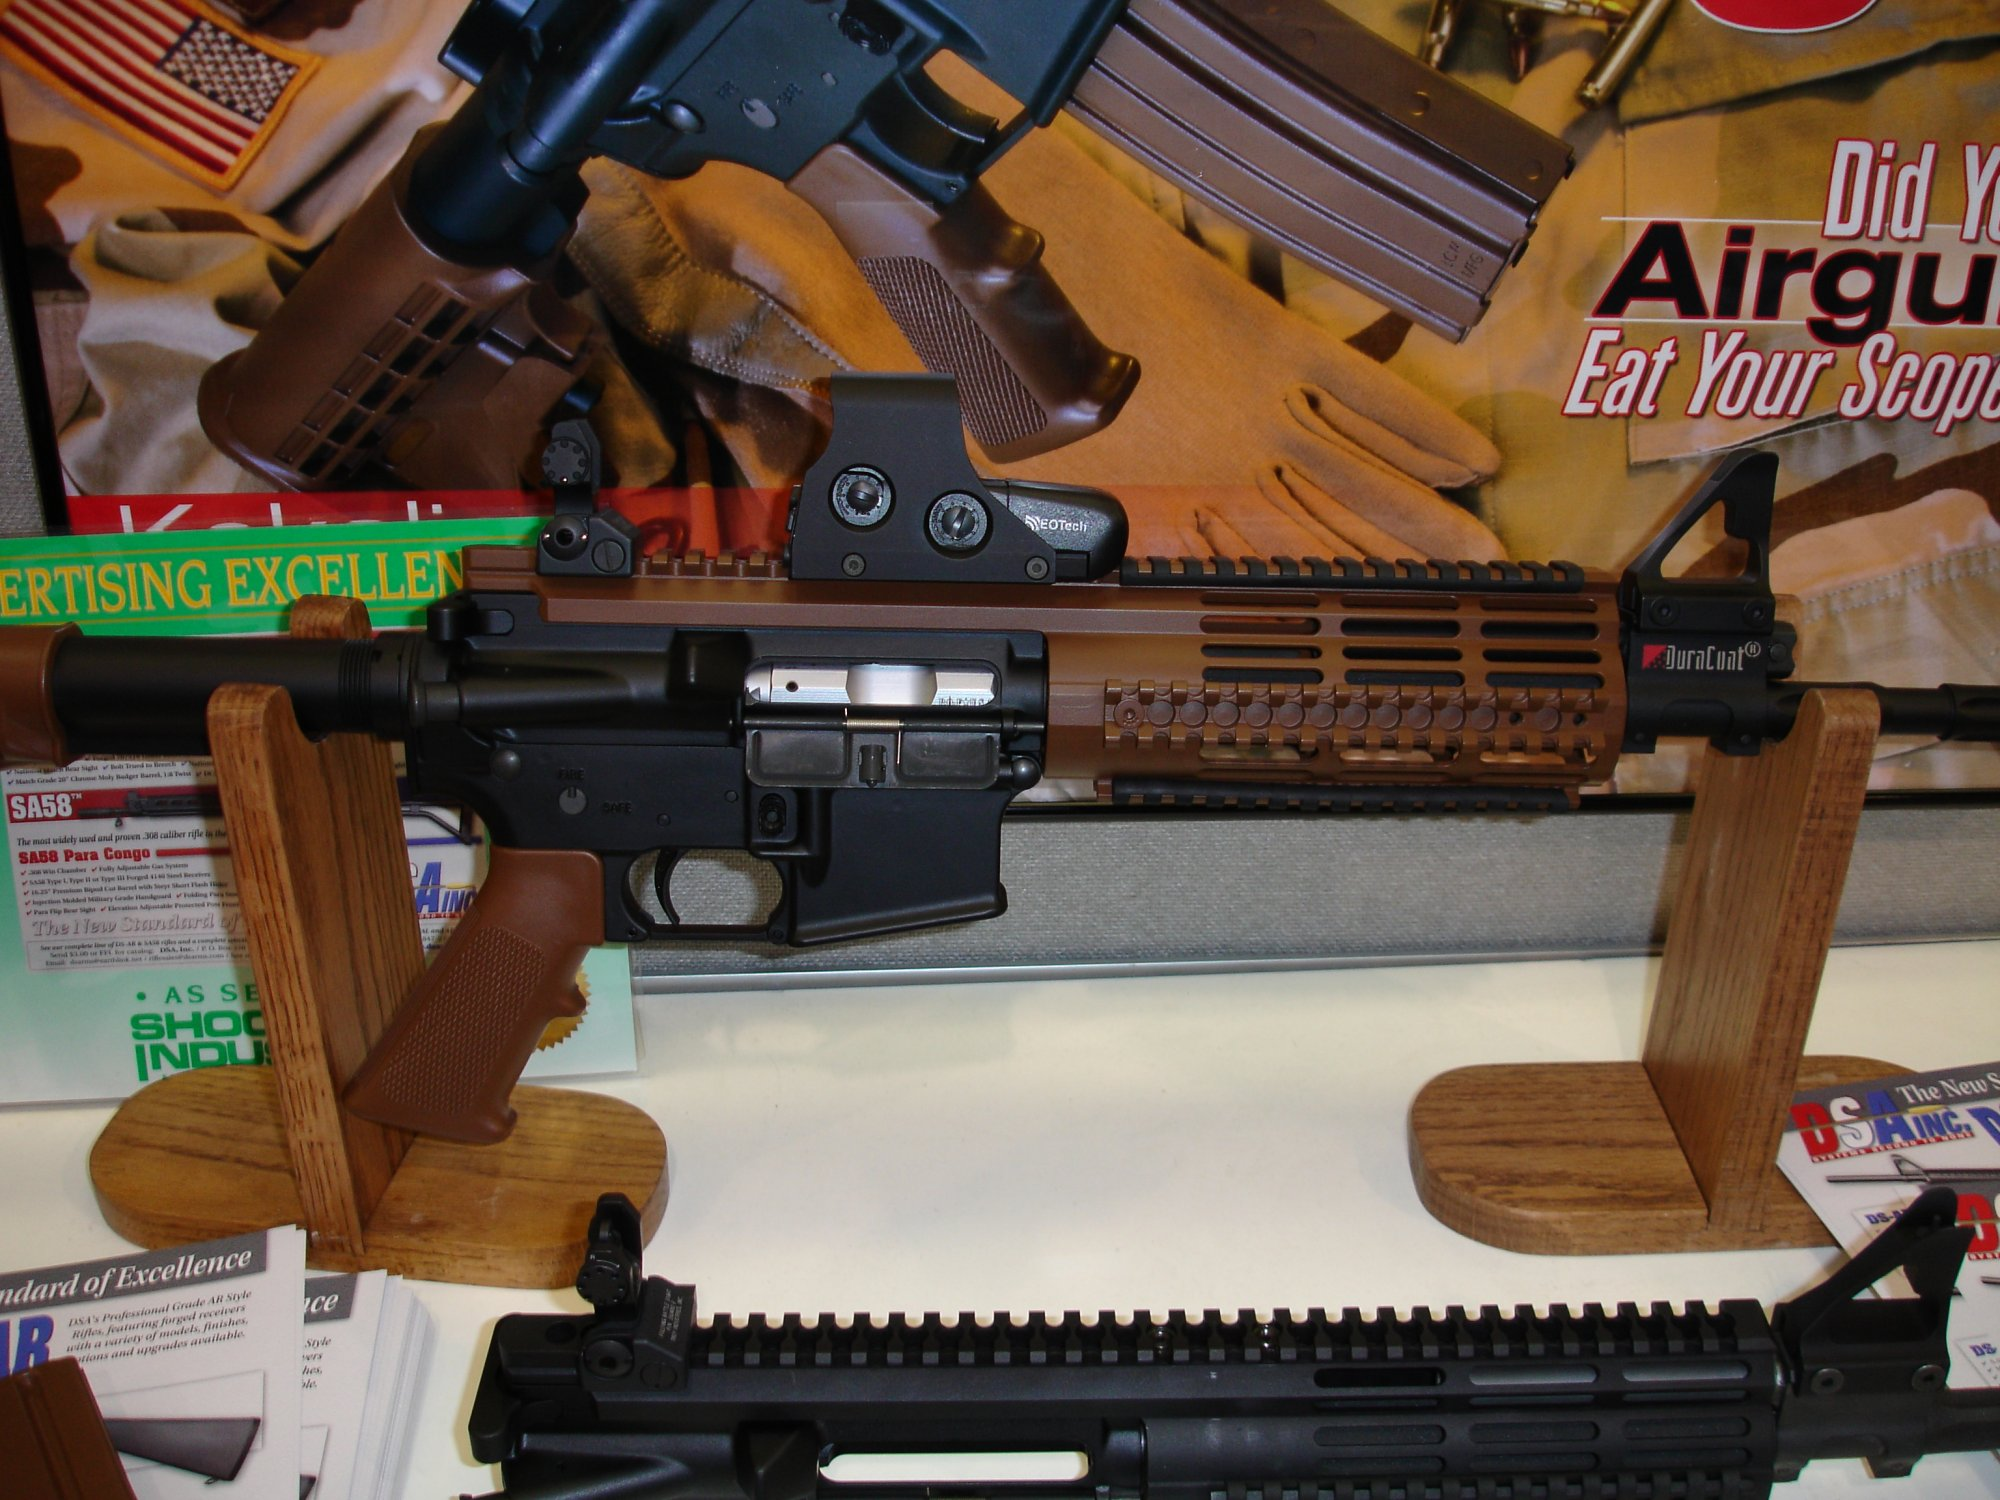 DSA%20Inc.%20Z4 GTC 1 <!  :en  >DSA Z4 GTC (Gas Trap Carbine) at SHOT Show 2005<!  :  >